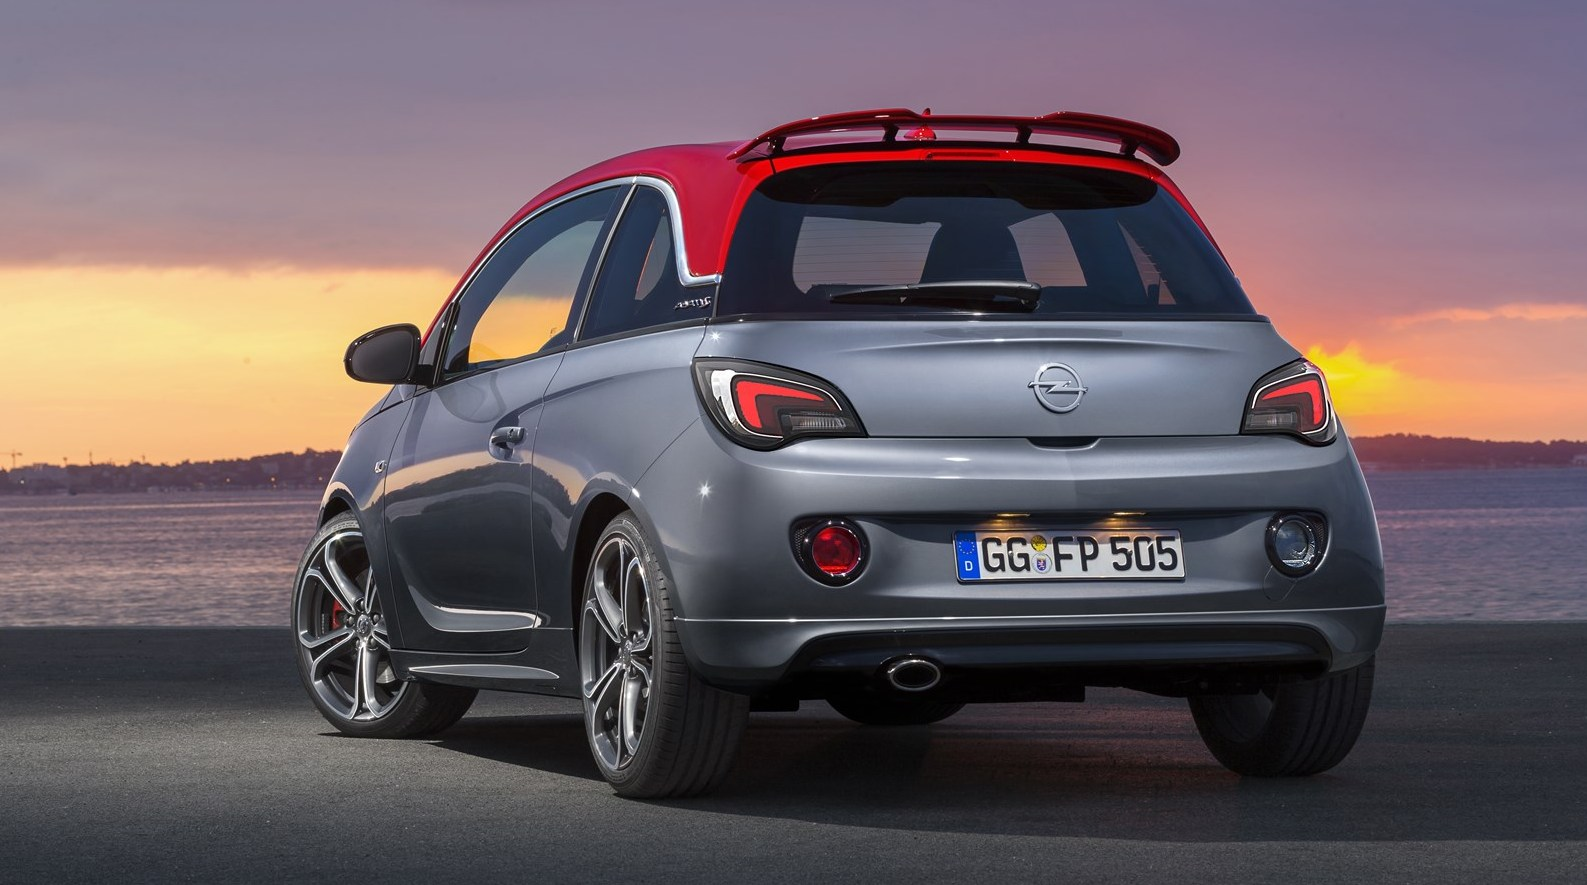 opel corsa adam s mokka and co premiere in paris 90minutes sport magazine. Black Bedroom Furniture Sets. Home Design Ideas